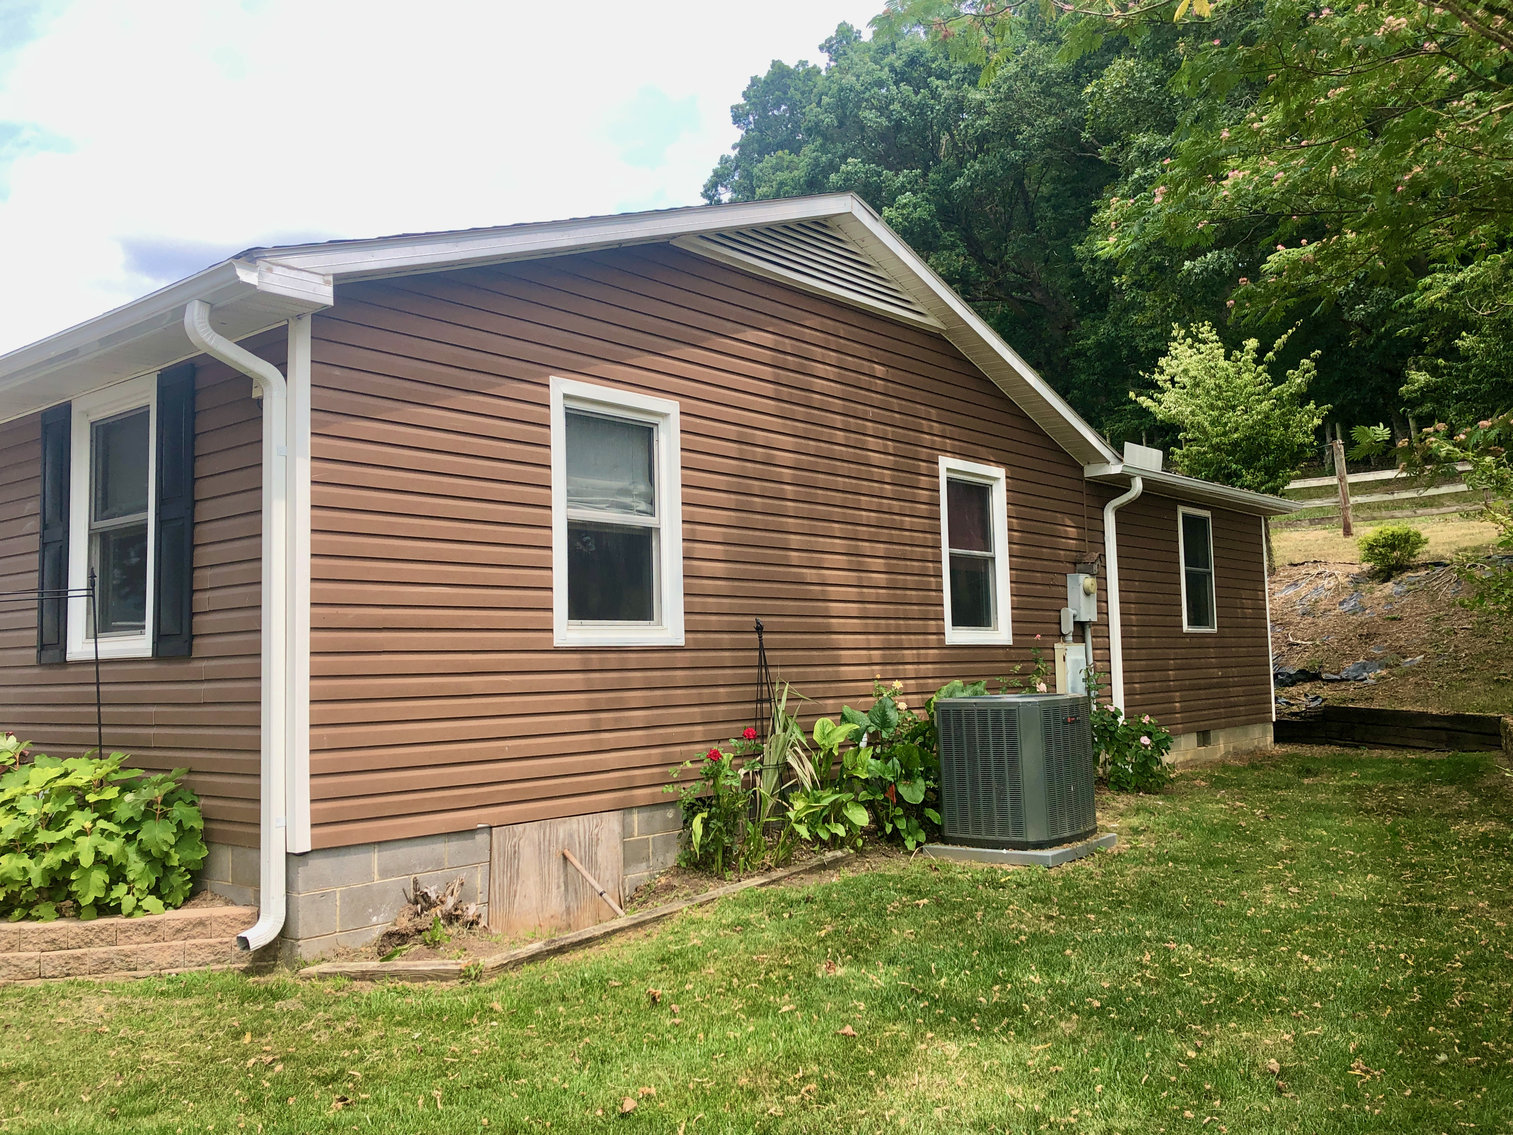 Image for Immaculate 3 BR/2 BA Home on .88 +/- Acre Lot w/Amazing Mountain Views in Rockingham County, VA